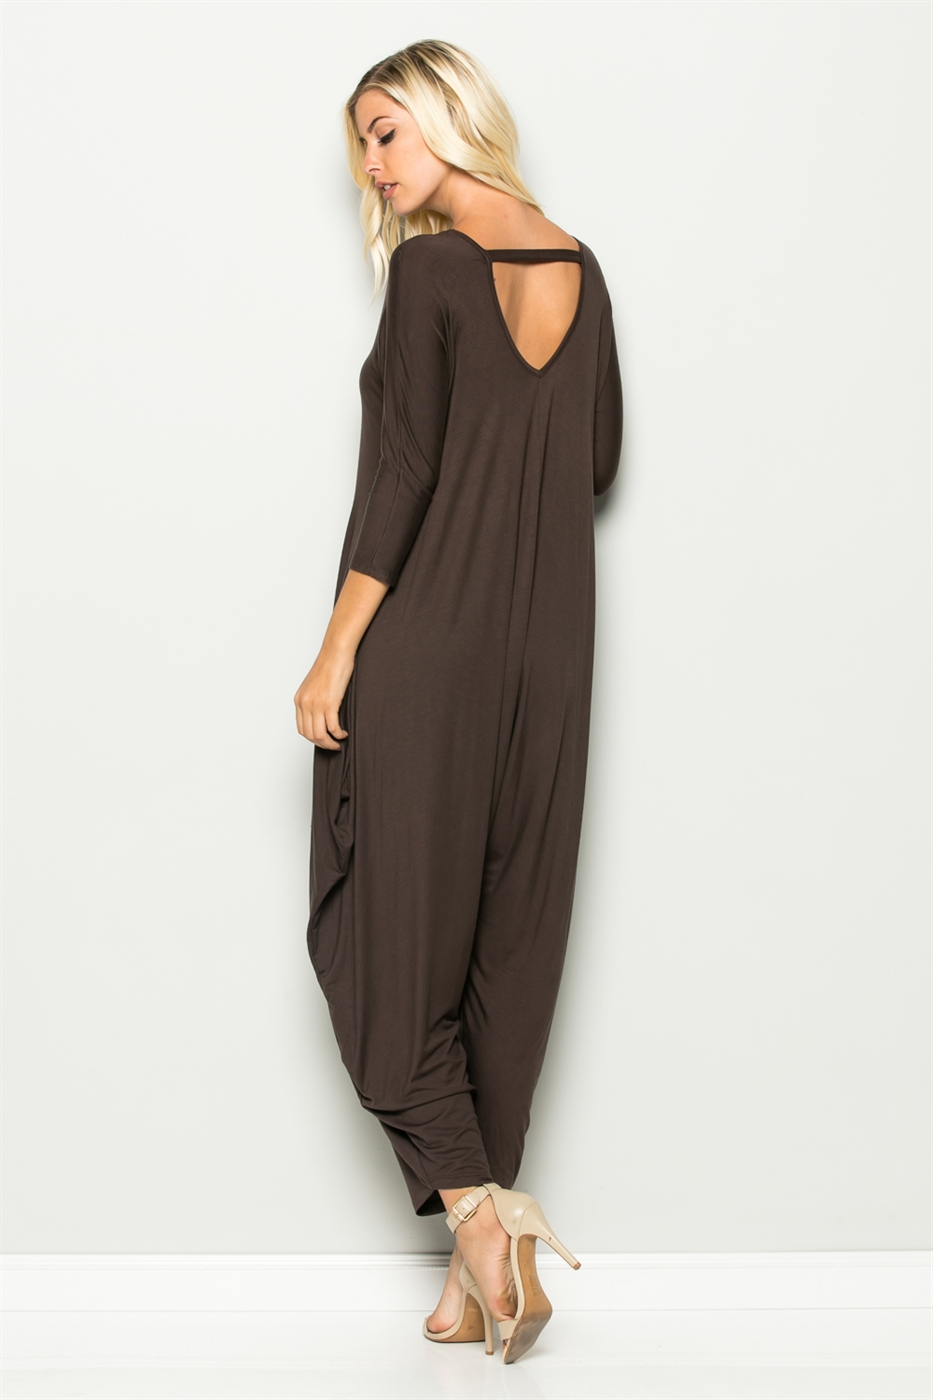 BACK CROSS HAREM JUMPSUIT - orangeshine.com